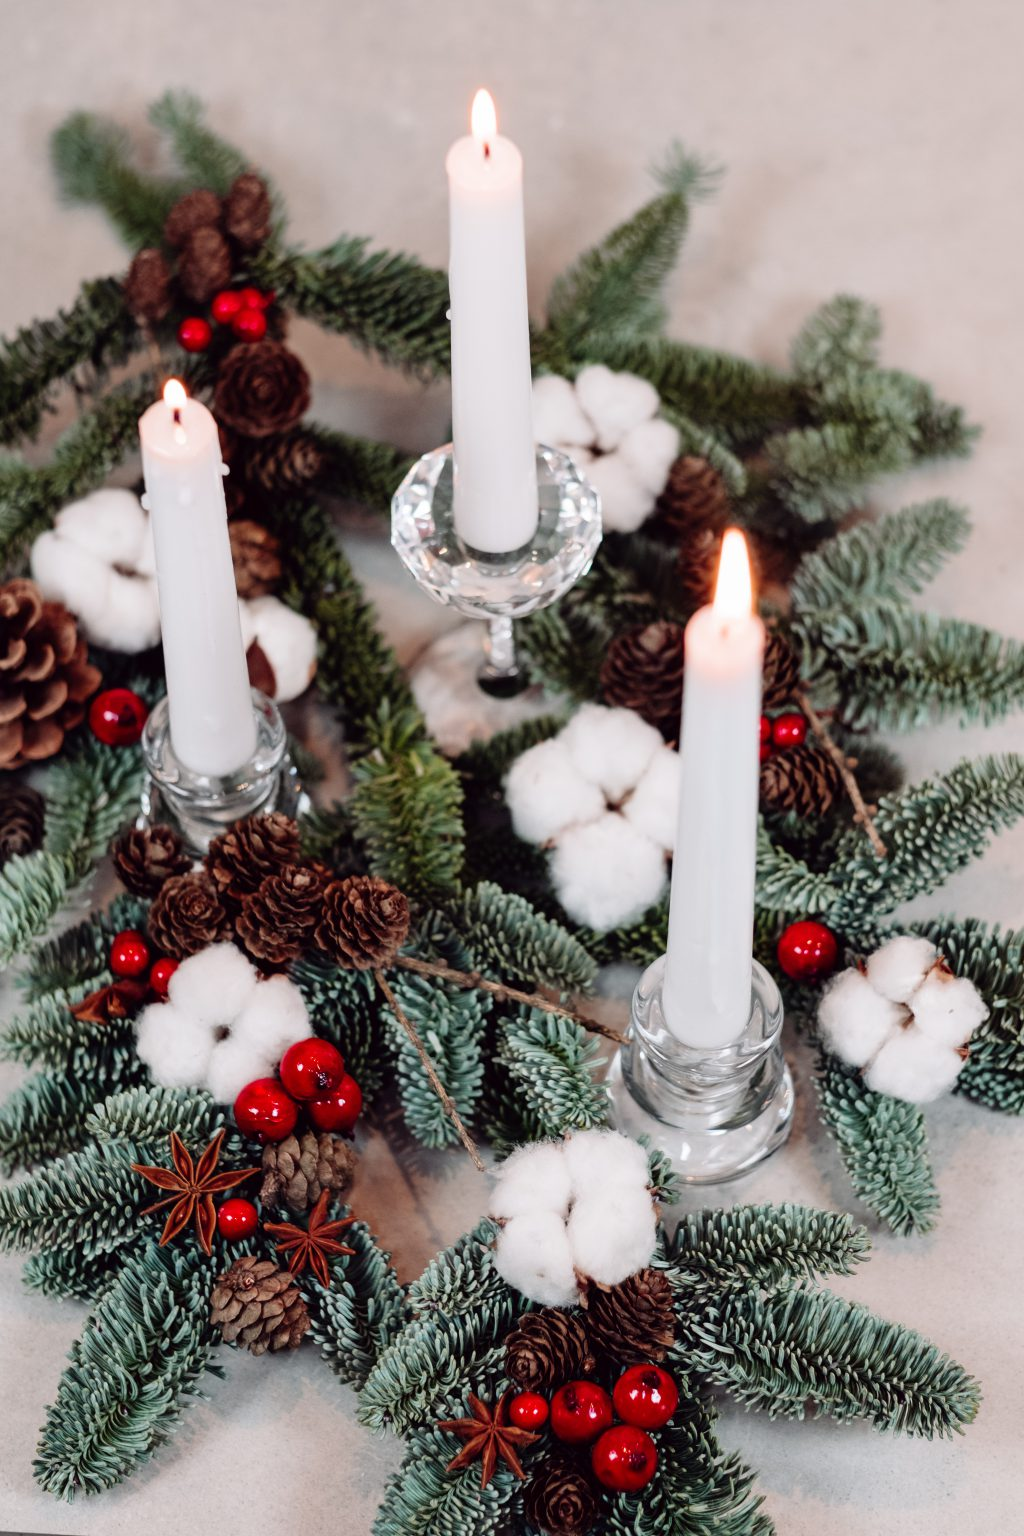 Christmas spruce decoration with candles 3 - free stock photo